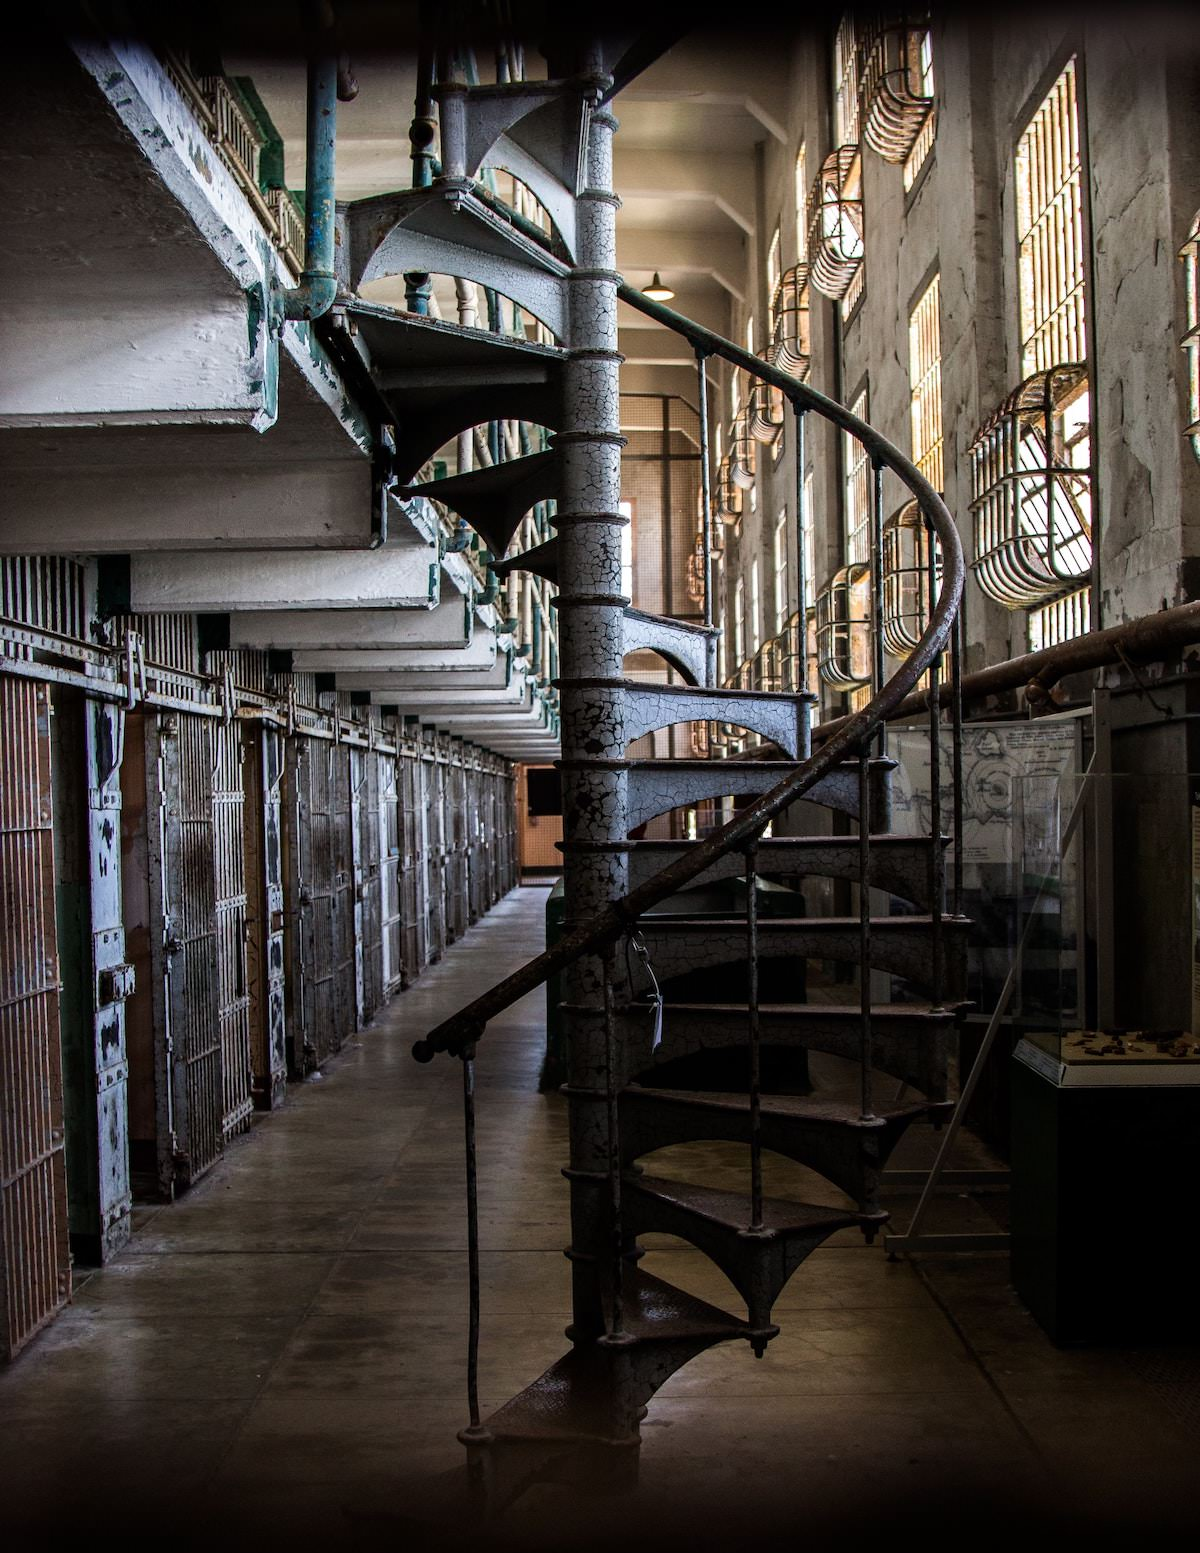 alcatraz prison in san francisco california, best photography spots in san francisco california